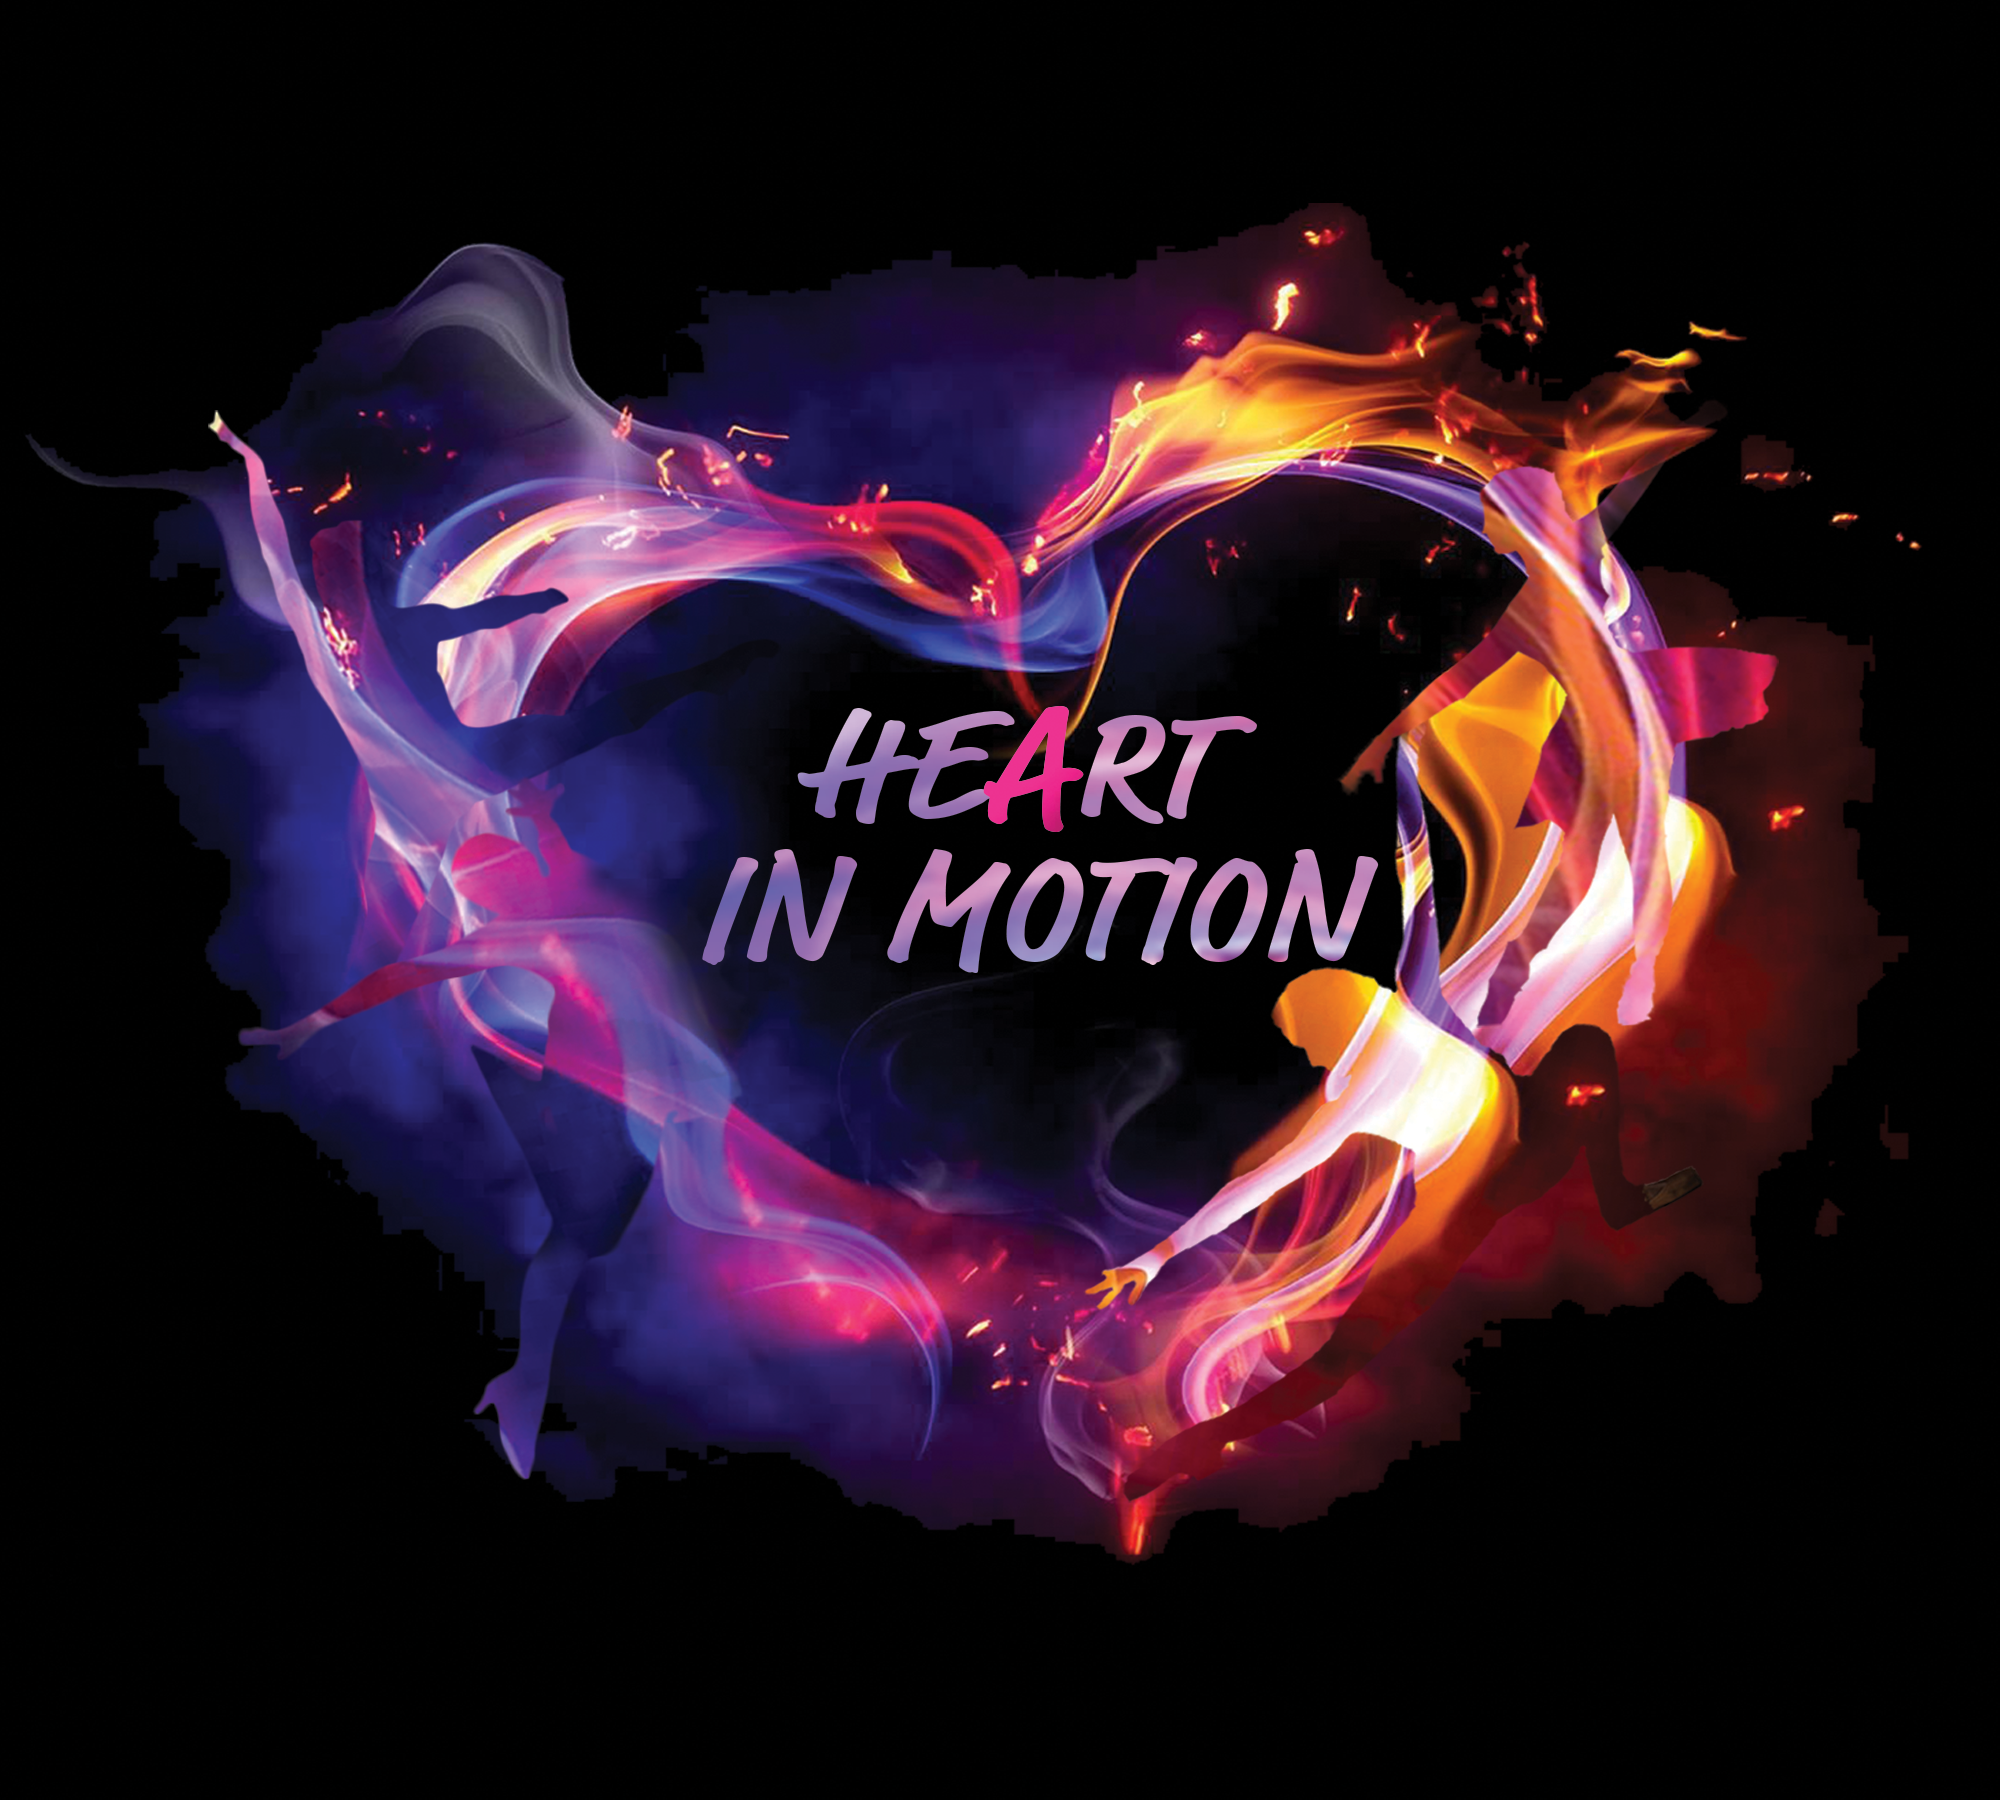 HeartInMotionLOGO.png